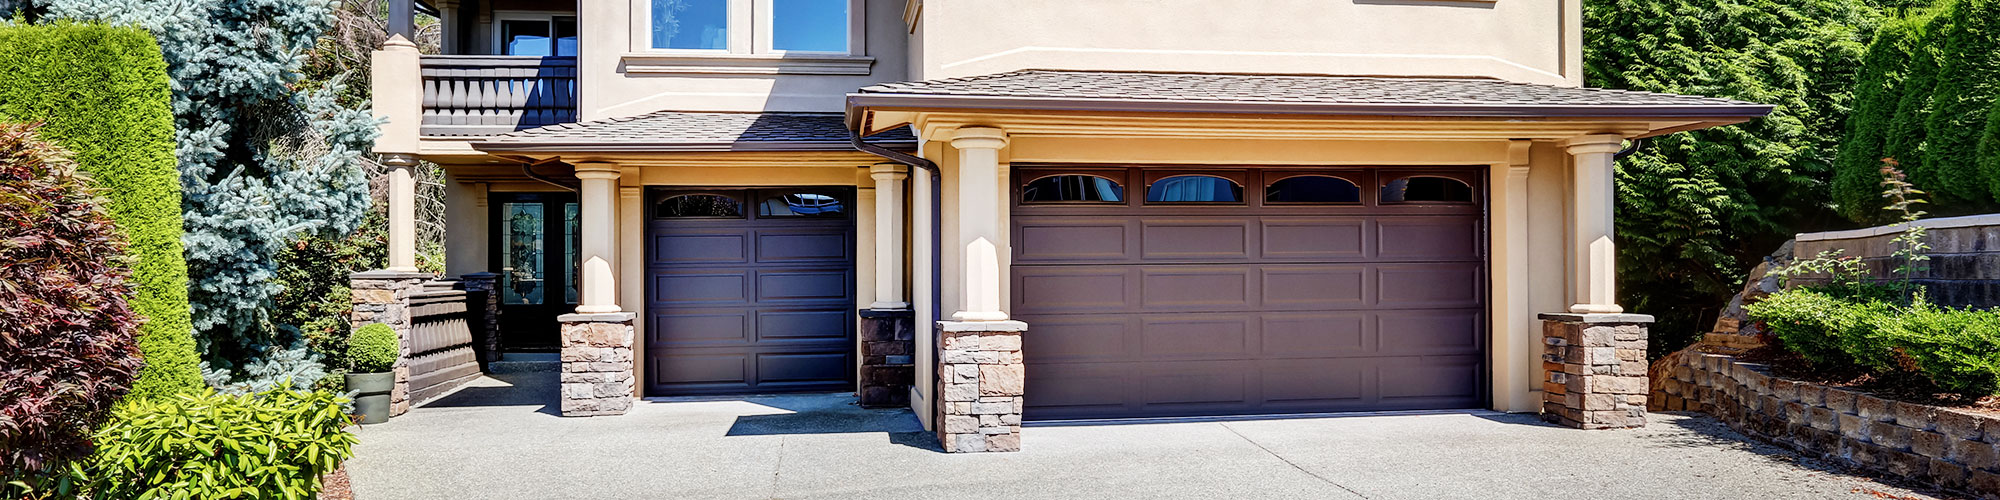 garage-door-los-angeles Garage Door Services